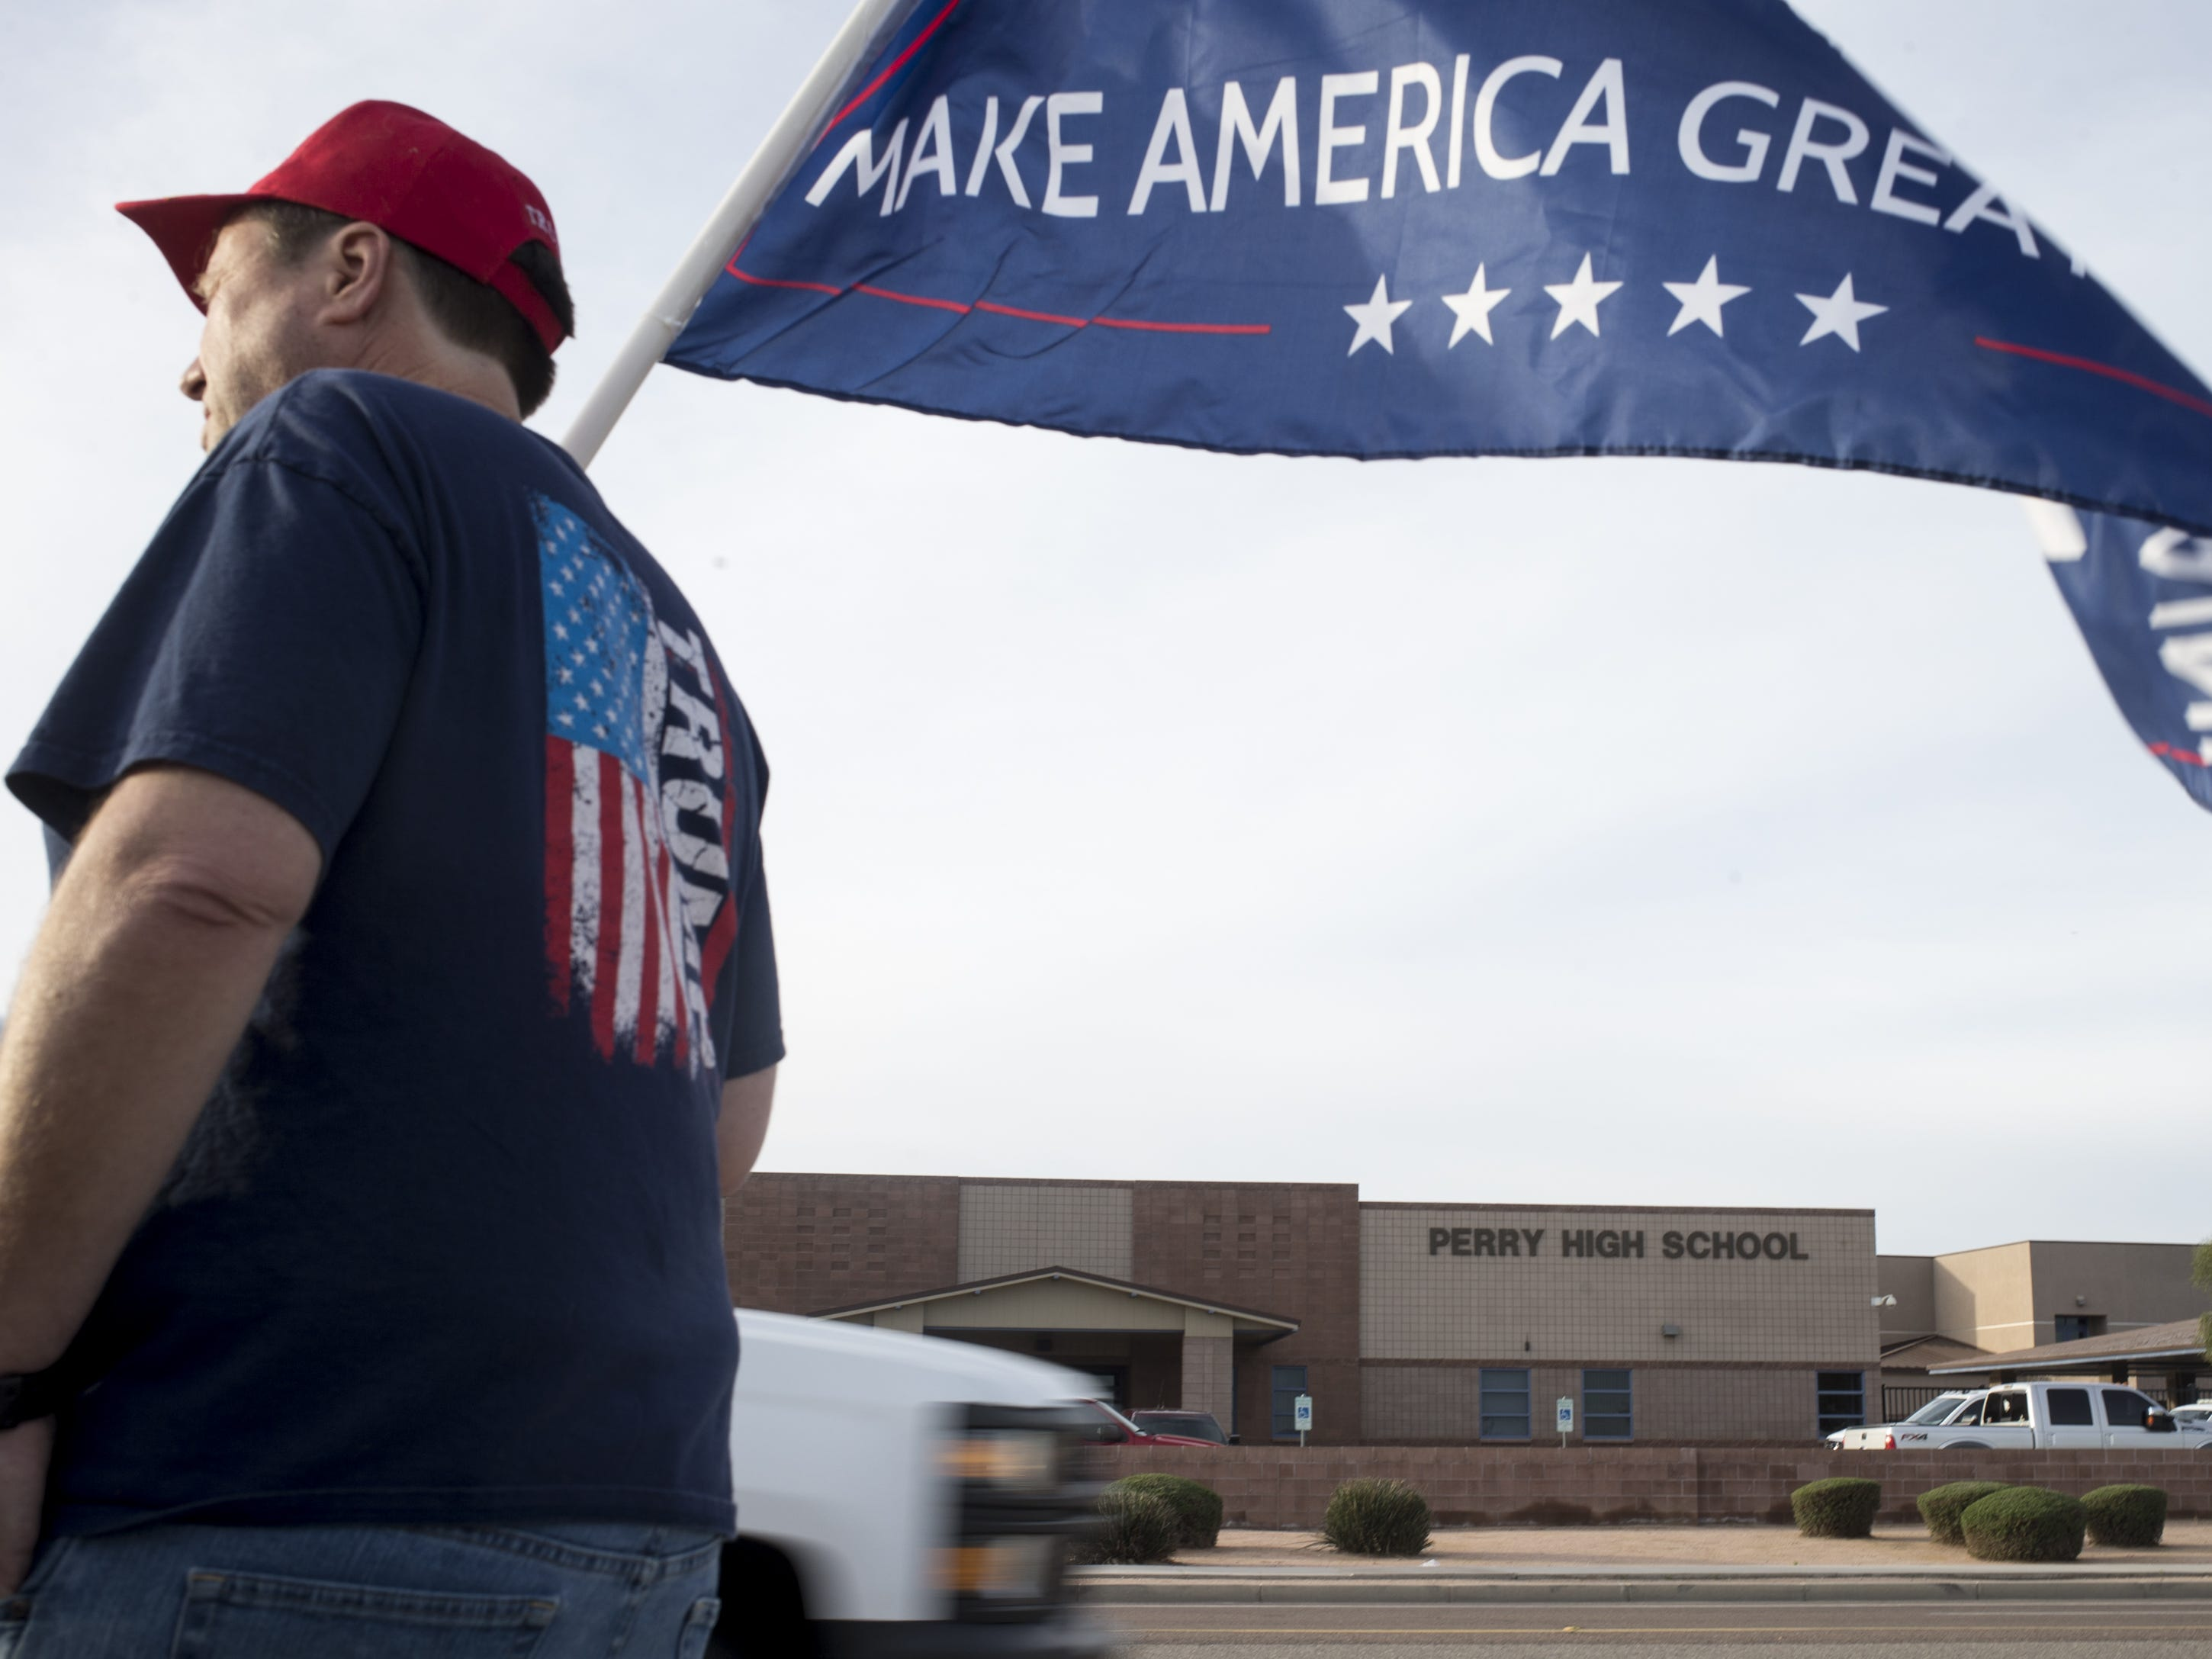 Protesters gather across from Perry High School on Queen Creek Road on March 4, 2019.